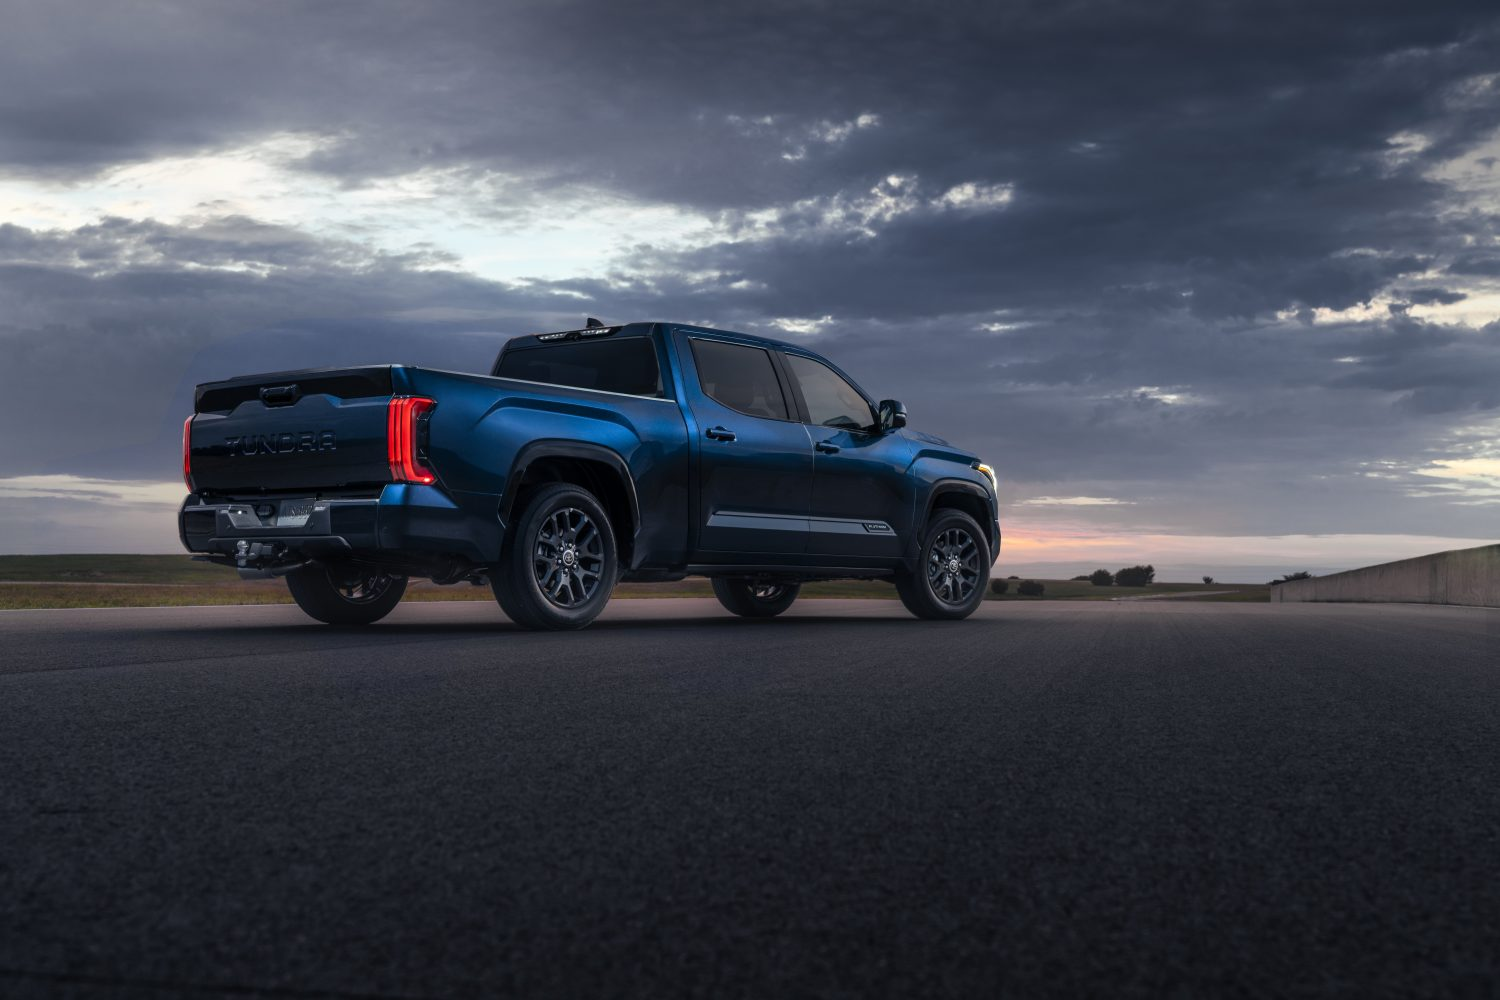 The 2022 Toyota Tundra TRD Pro has a lower payload rating than the Ford Ranger